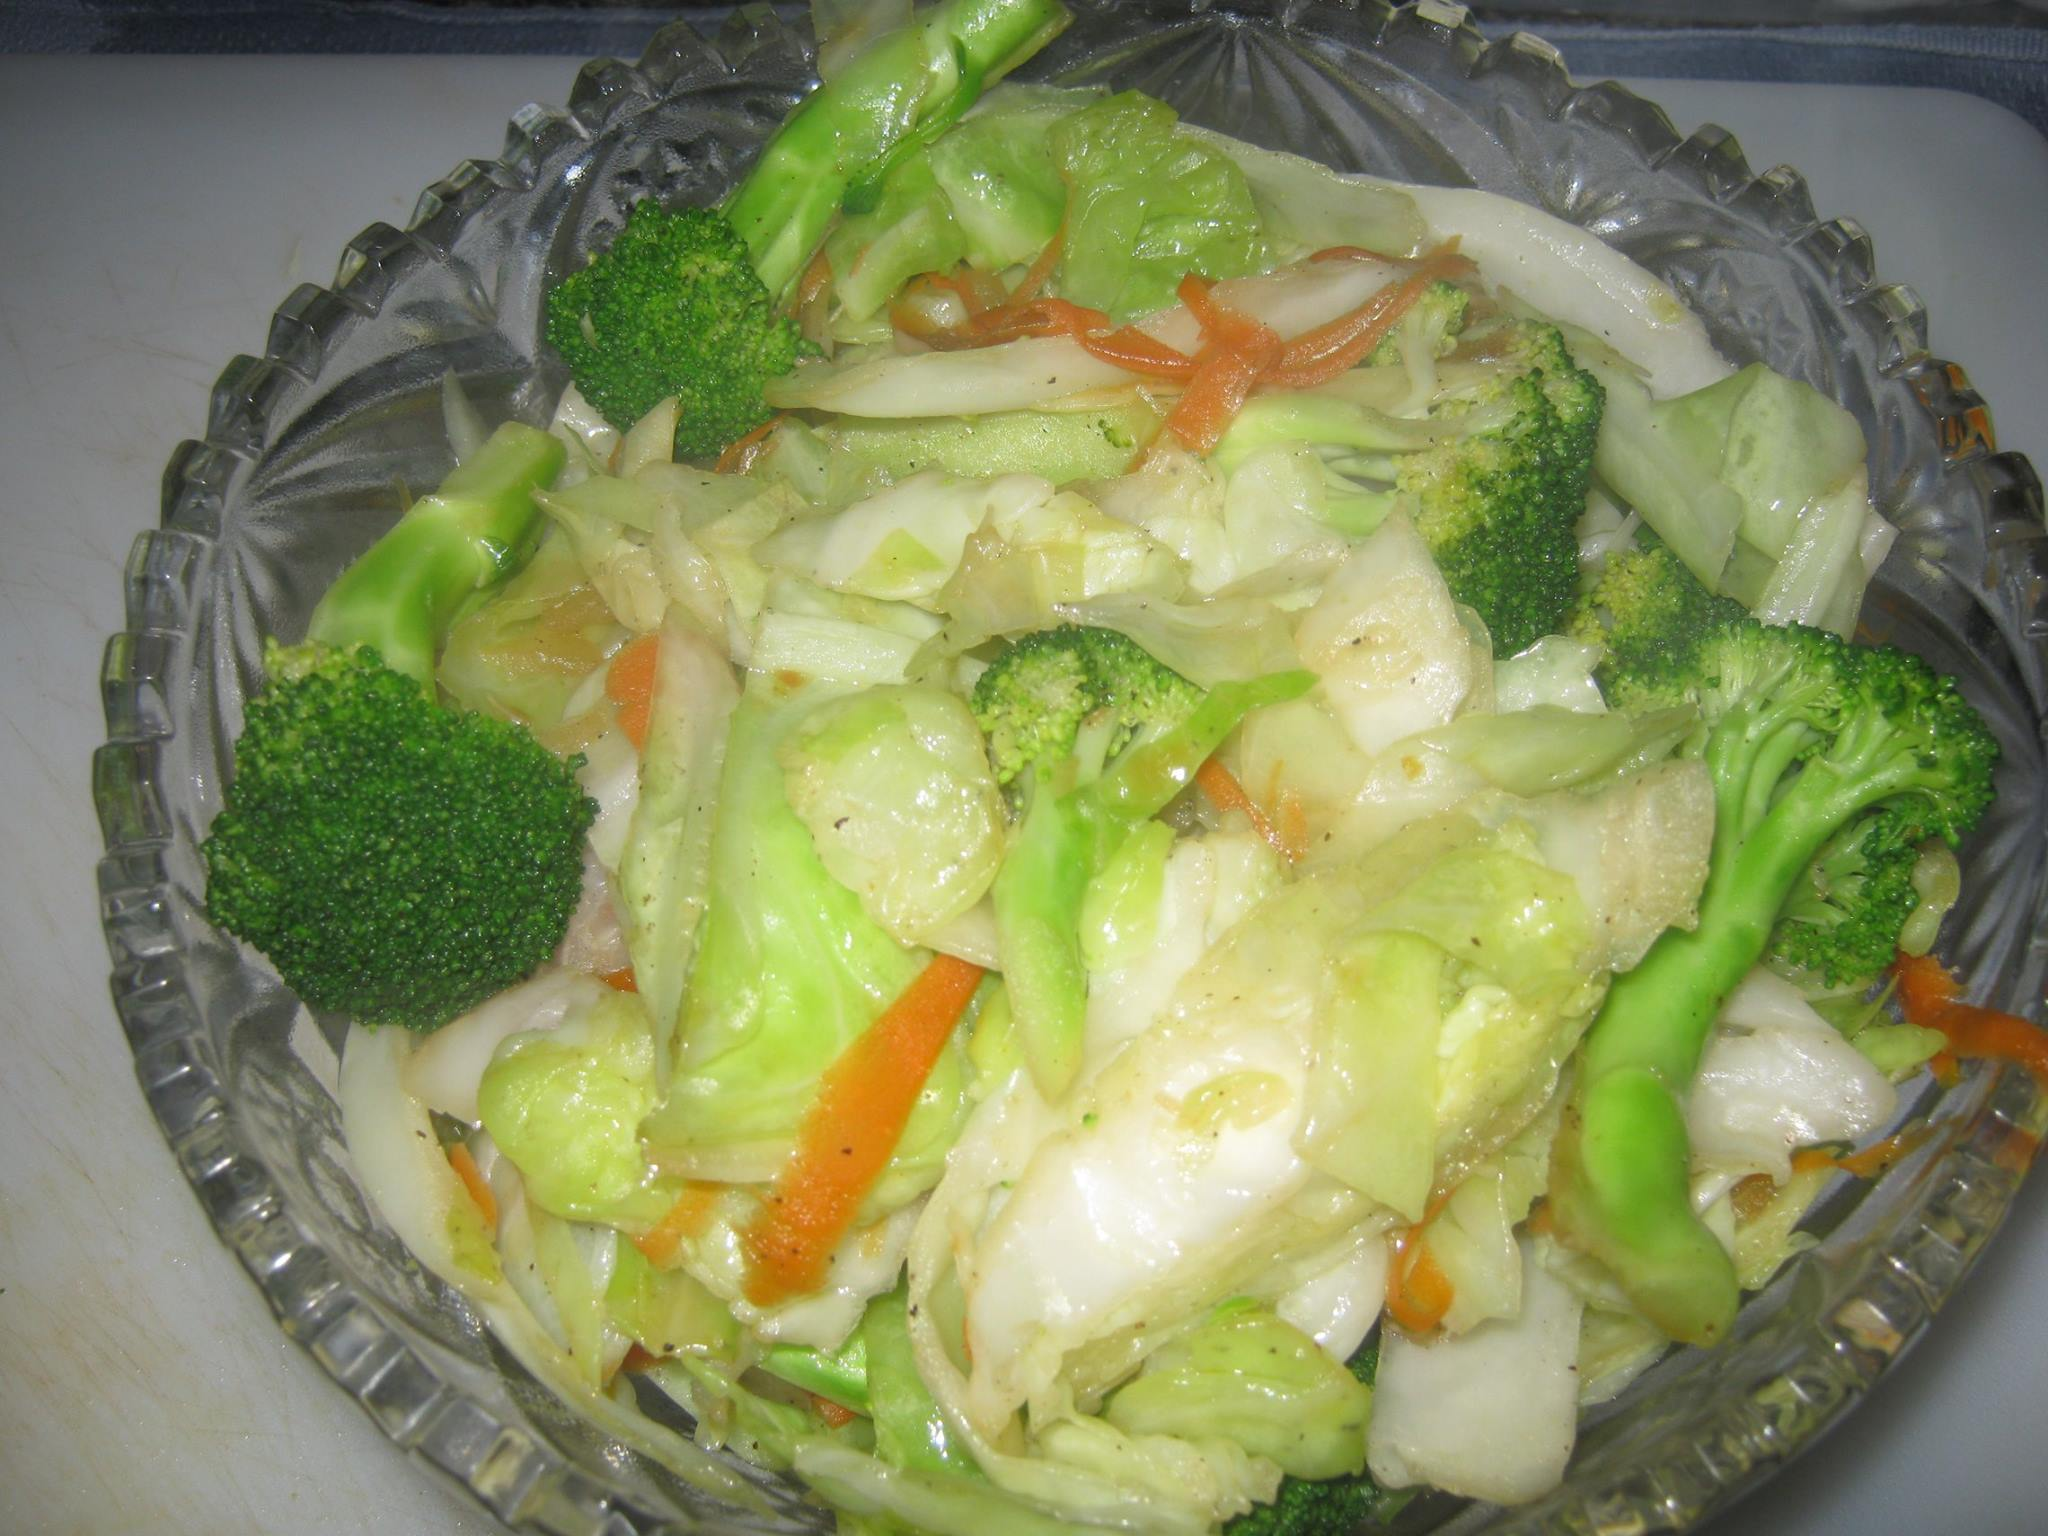 Mixed vegetable recipe in a glass bowl